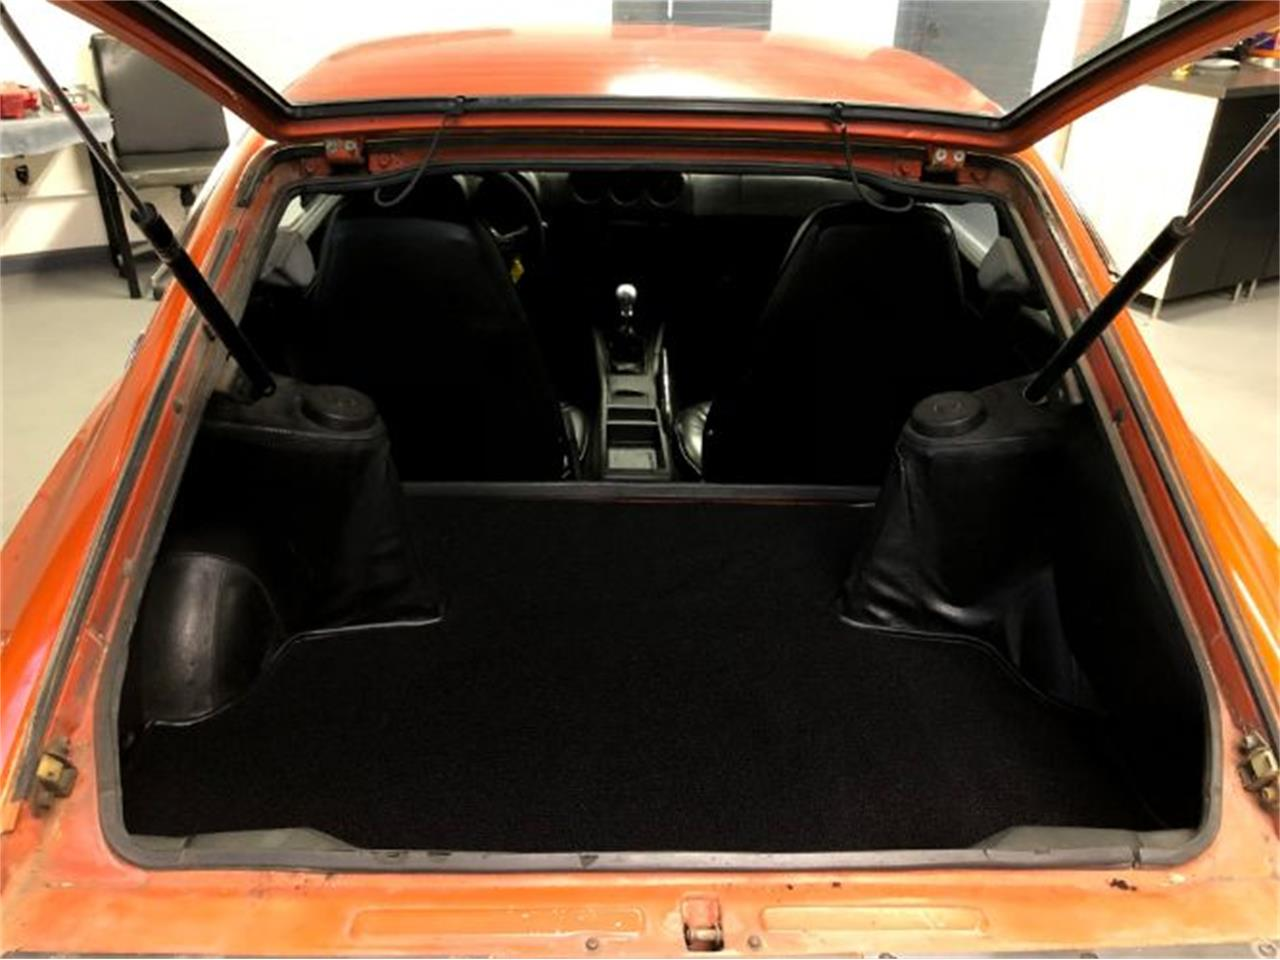 1975 Datsun 280Z for sale in Cadillac, MI – photo 16